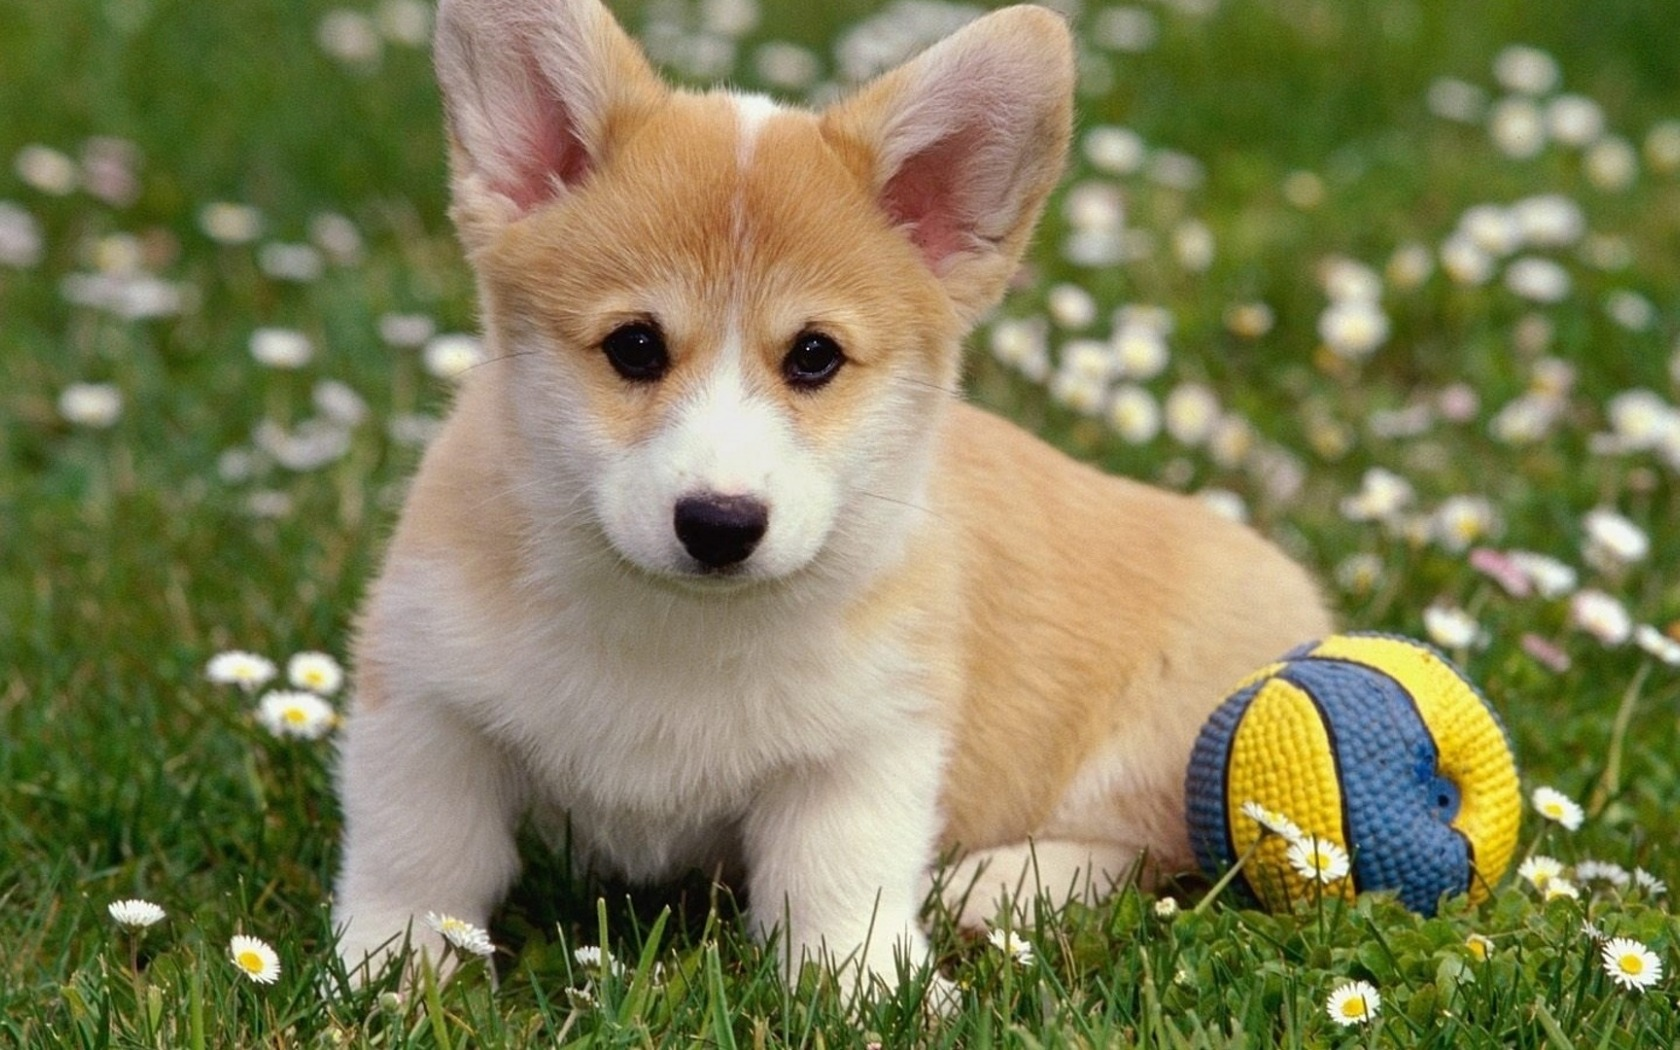 Download-Dog-Wool-Welsh-Corgi-Pembroke-Corgi-Grass-section-Resolution-1920x-wallpaper-wp3804813